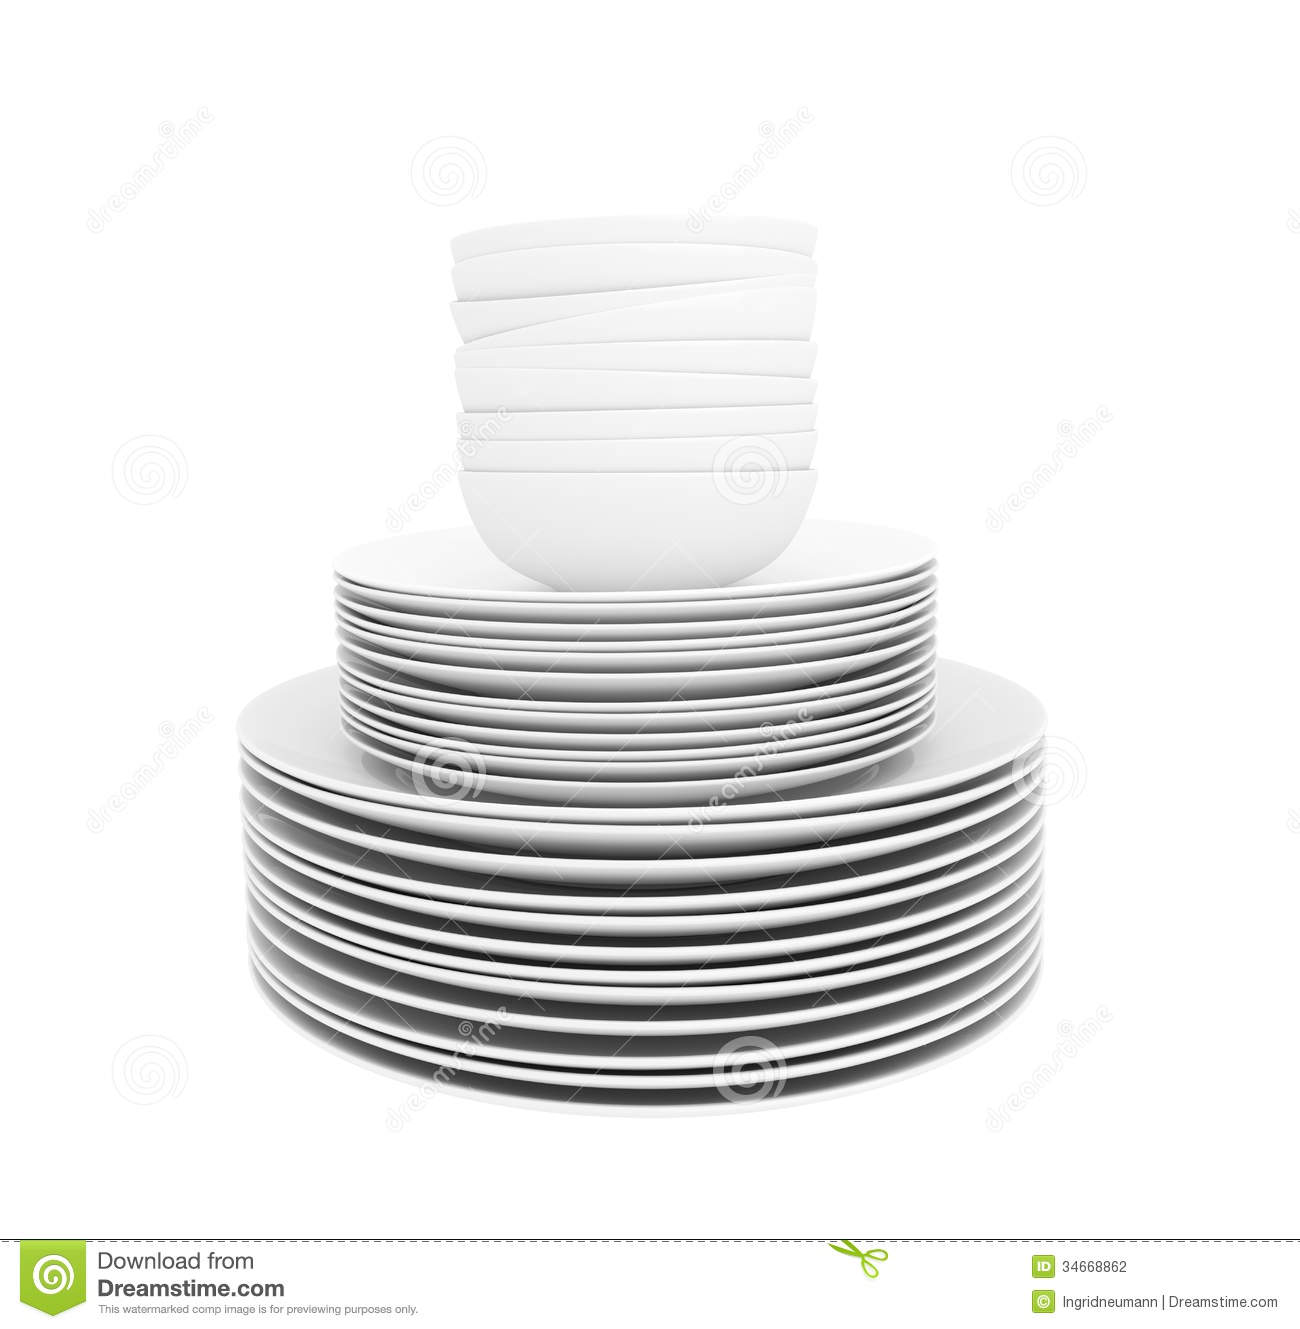 Stock Photography Stack White Dishes Soup Bowls Isolated White Clean Plates Background Image34668862 on table setting clip art